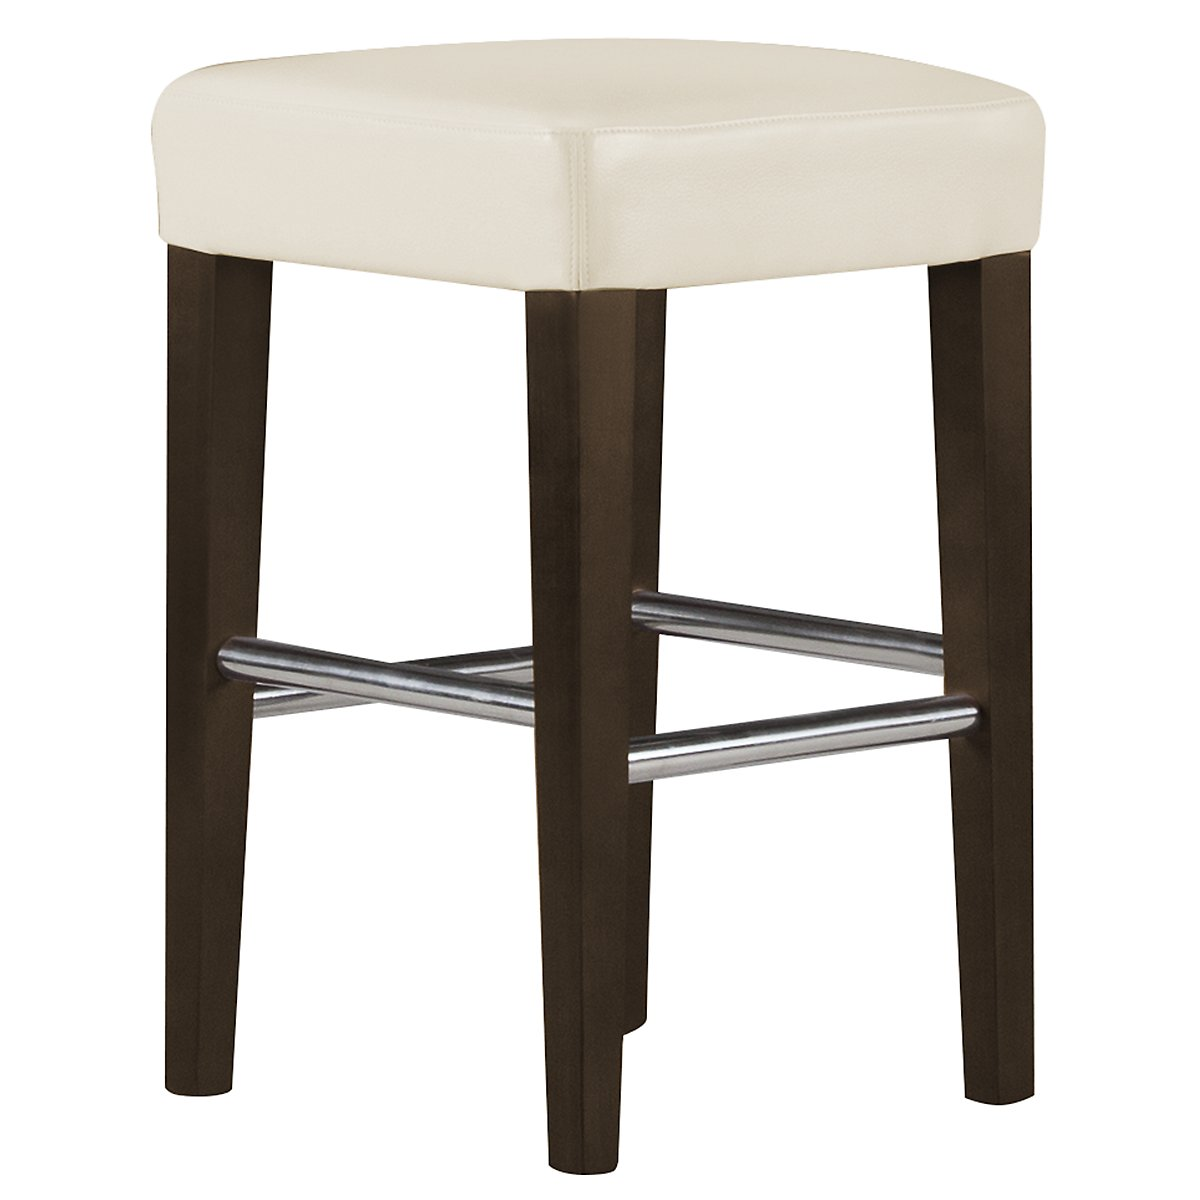 "Kayla2 Light Beige Bonded Leather 24"" Bonded Leather Barstool"